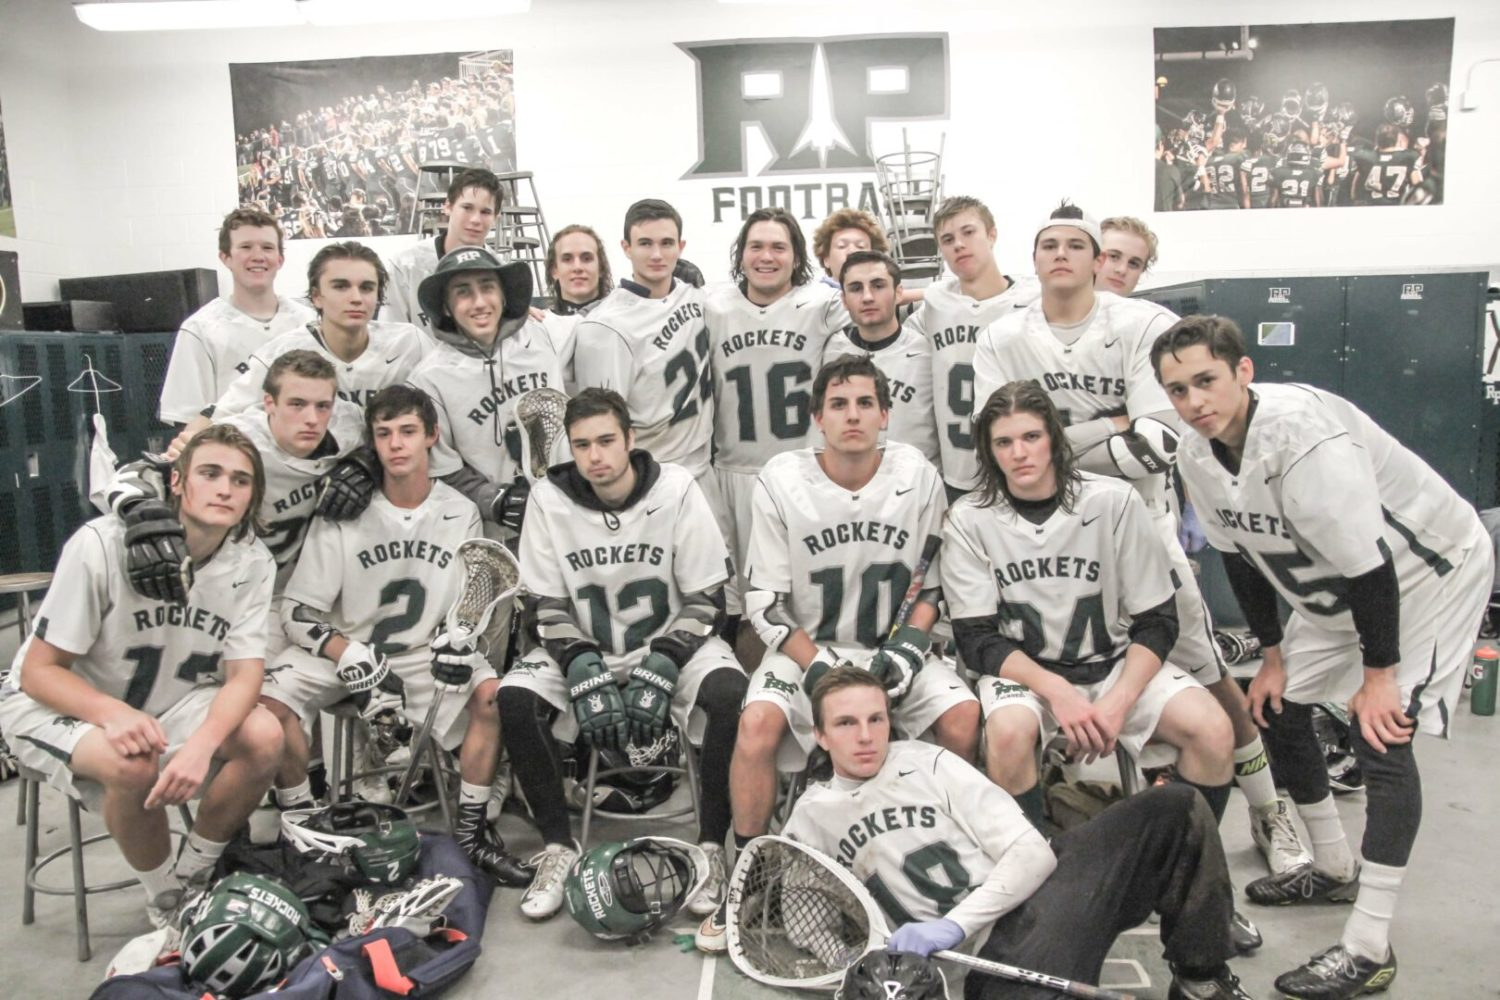 2016 Reeths-Puffer lacrosse team. Photo/Joe Lane